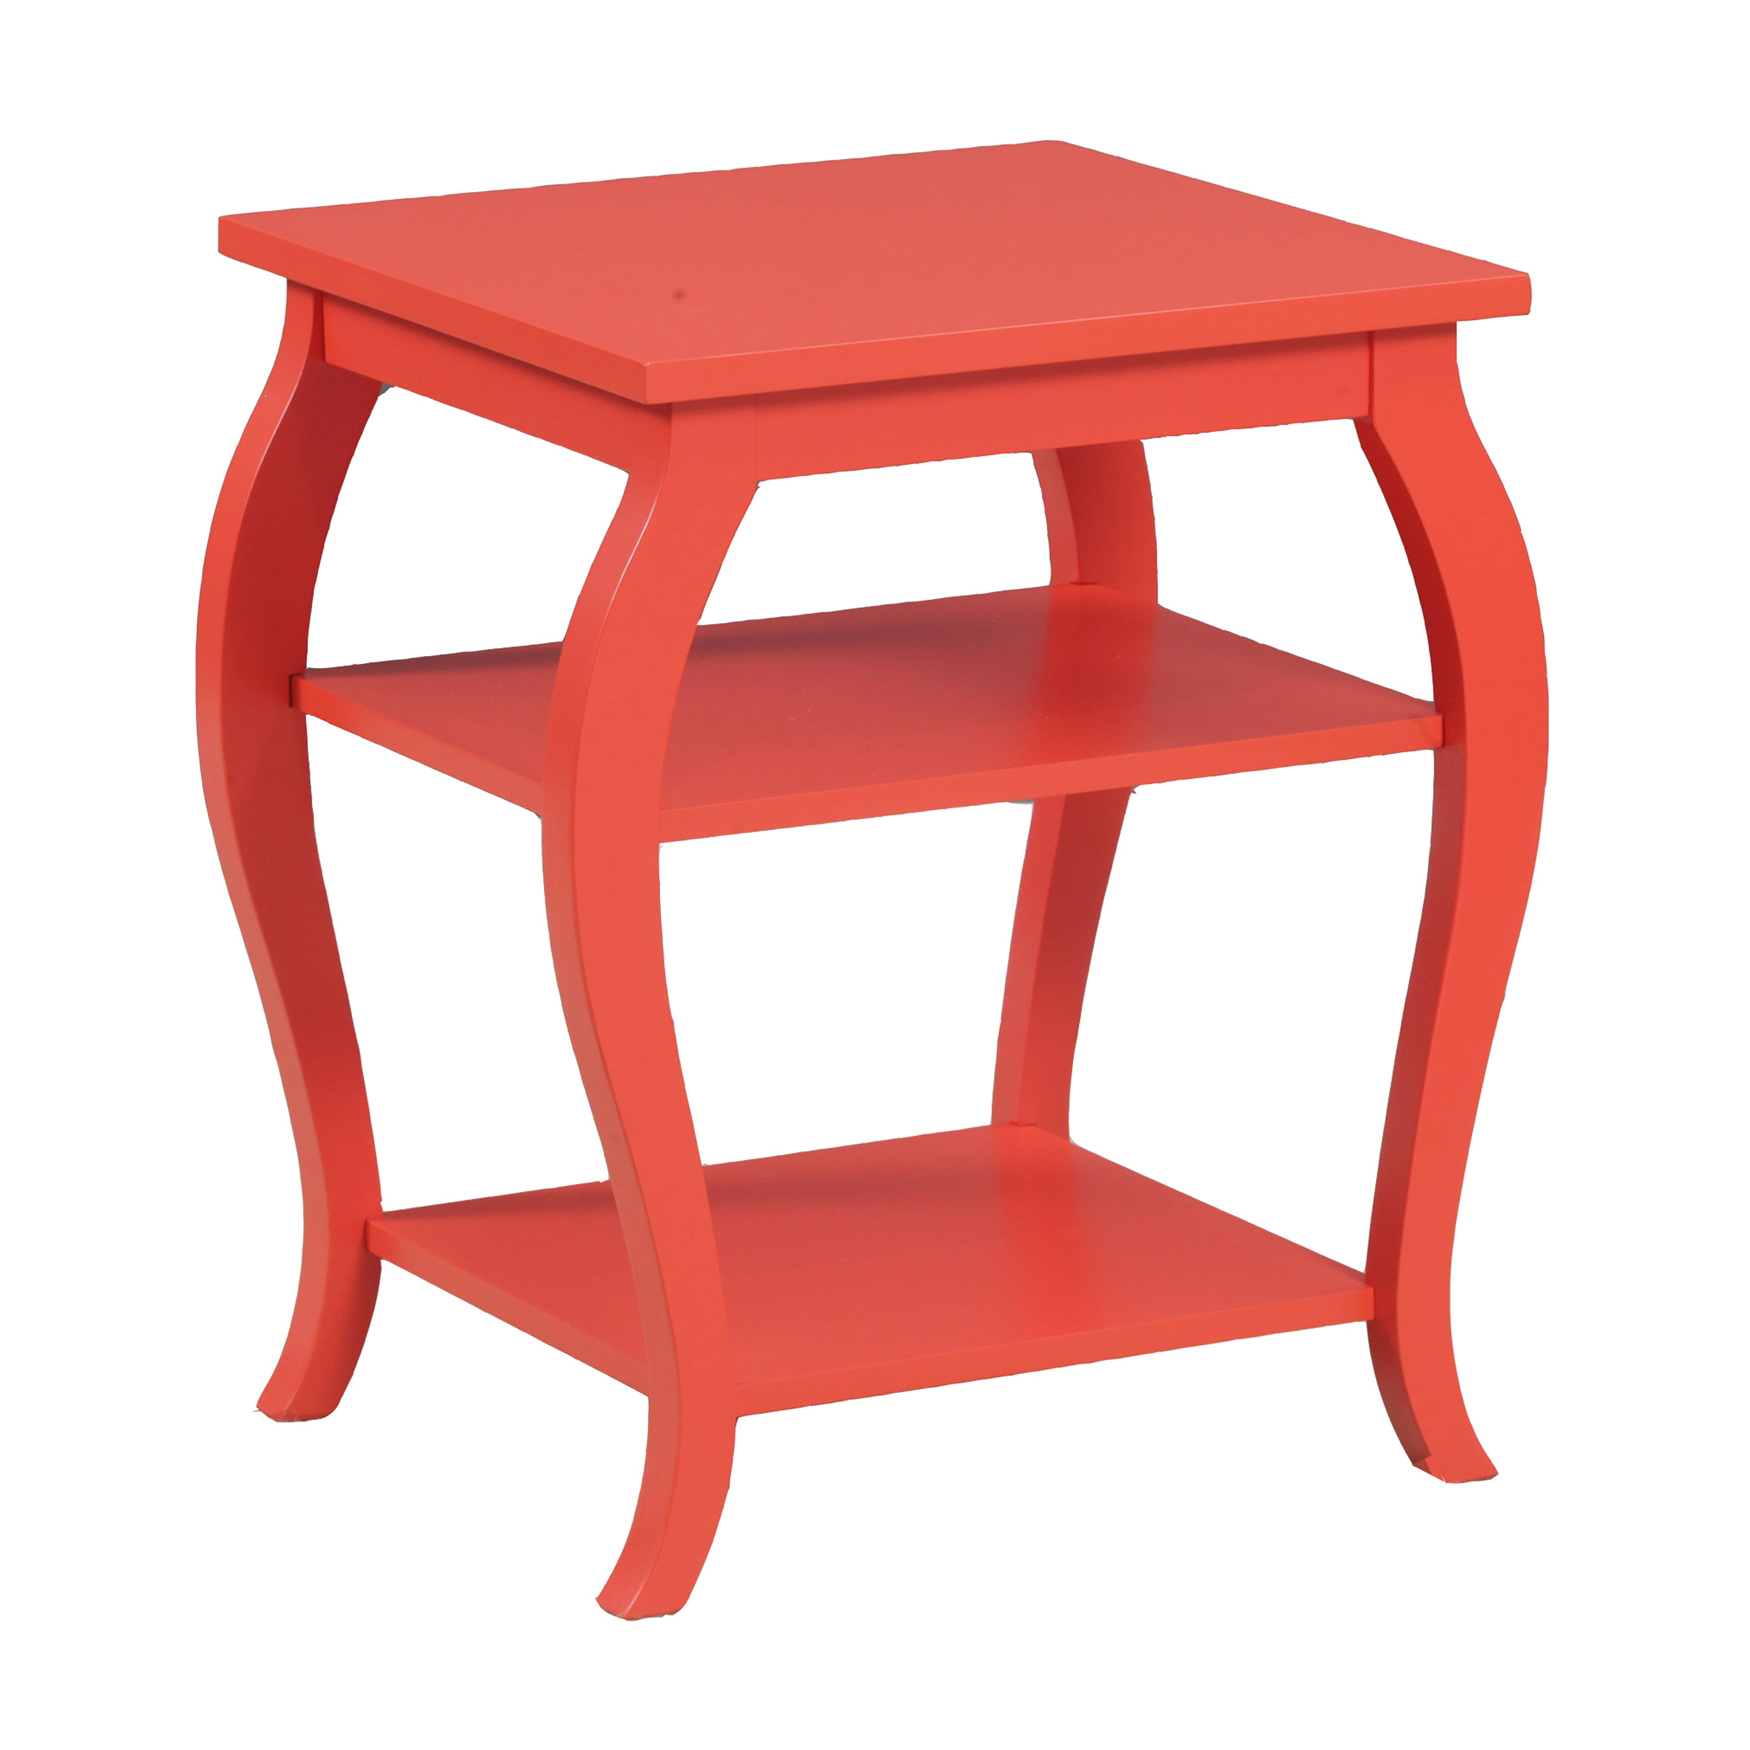 Panorama Table, ORANGE